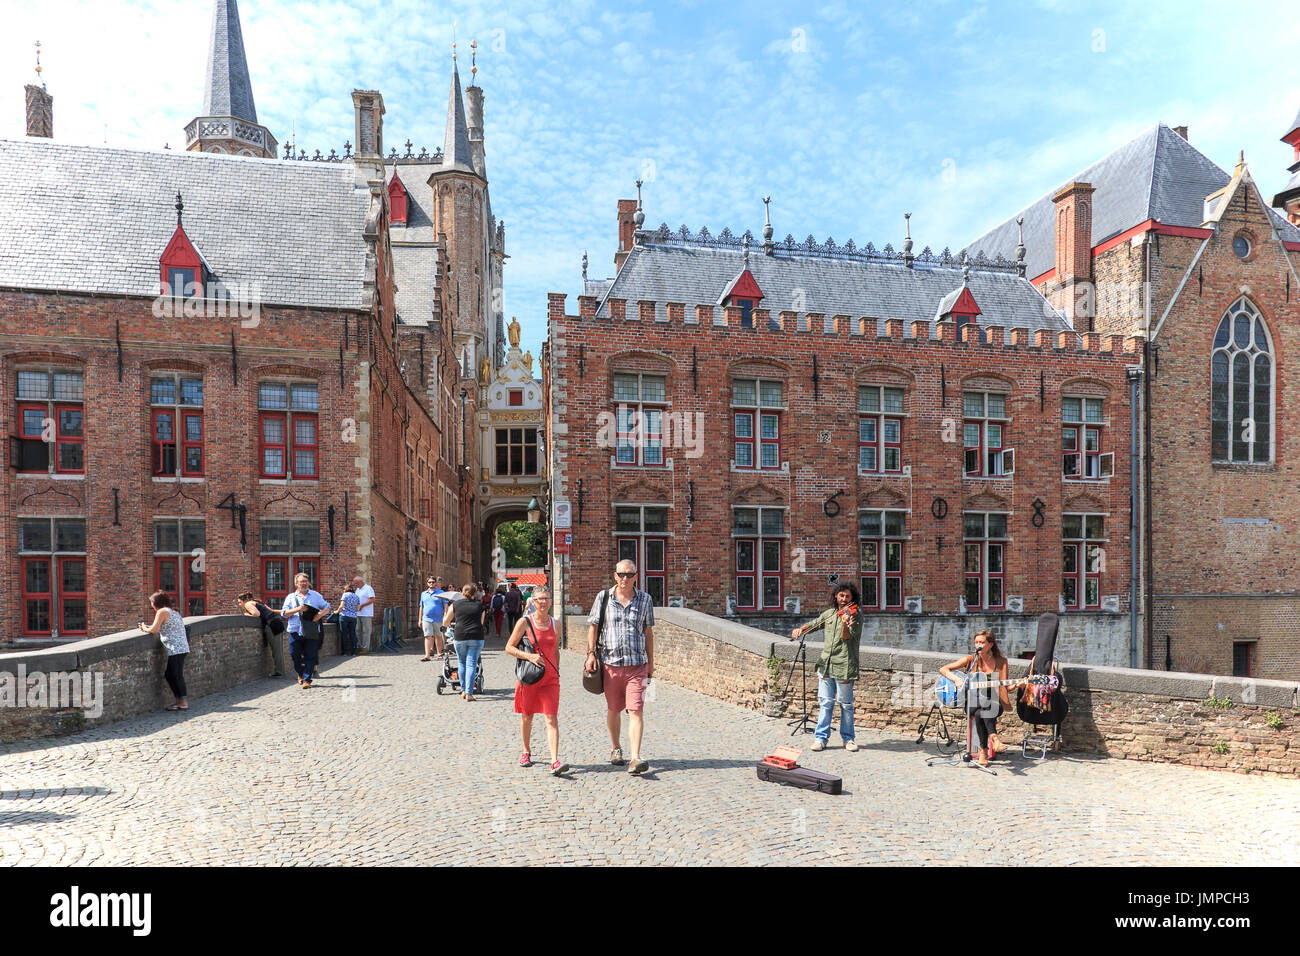 Bruges, Belgium - July 7, 2017: Tourists walking in the narrow streets in the center of Bruges. Bruges is also called the Venice of the North due to t - Stock Image